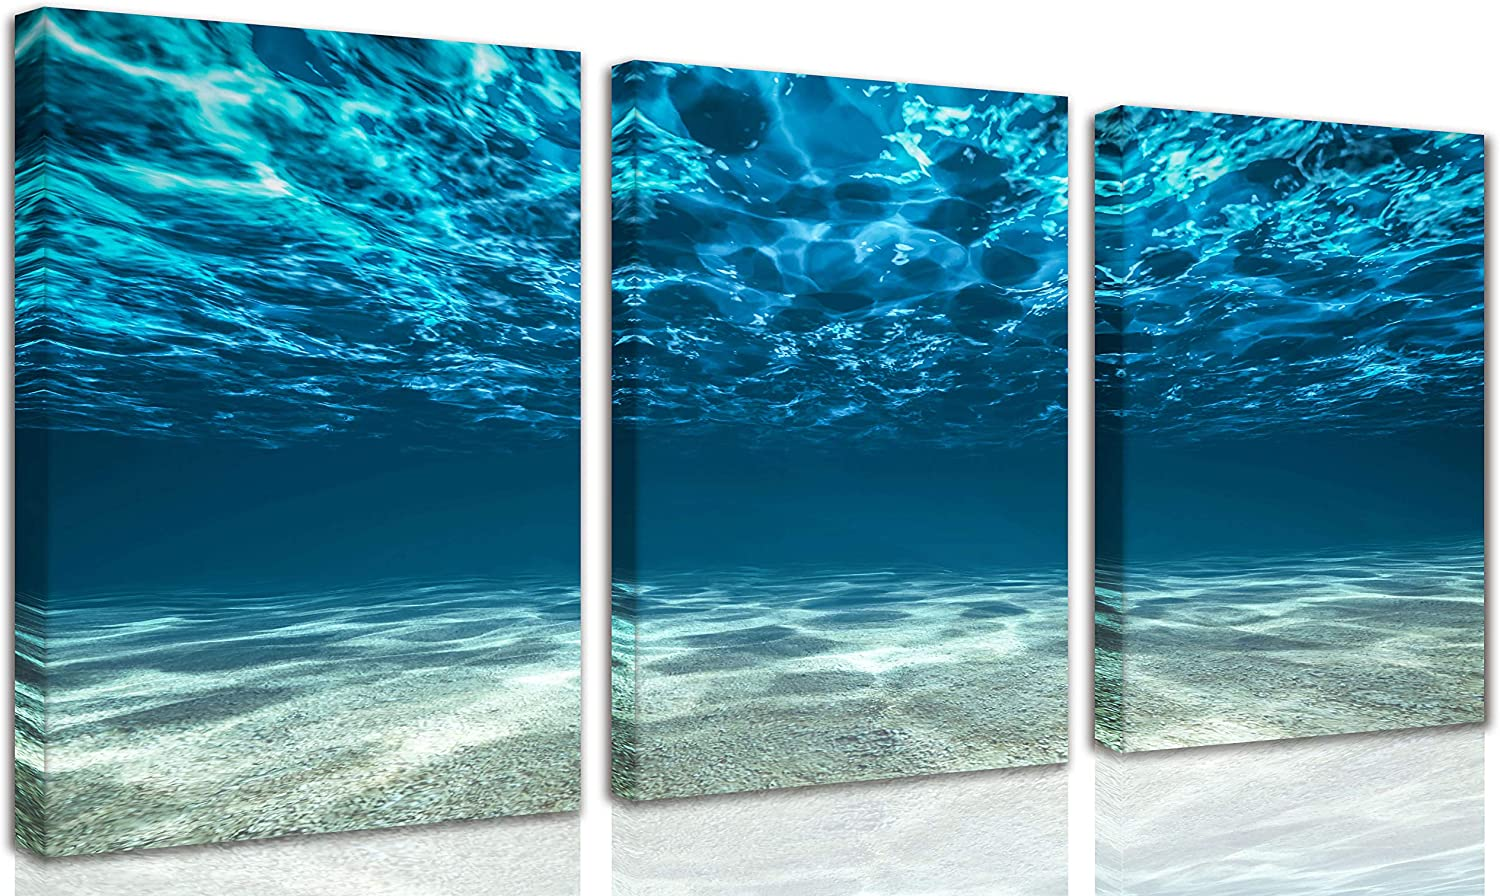 CERLMLAND 3 Panel ocean - canvas art Blue Ocean Sea wall art for living room, Seaview Bottom Pictures Painting Artwork-wall-art - Home office Decor each 12x16inch